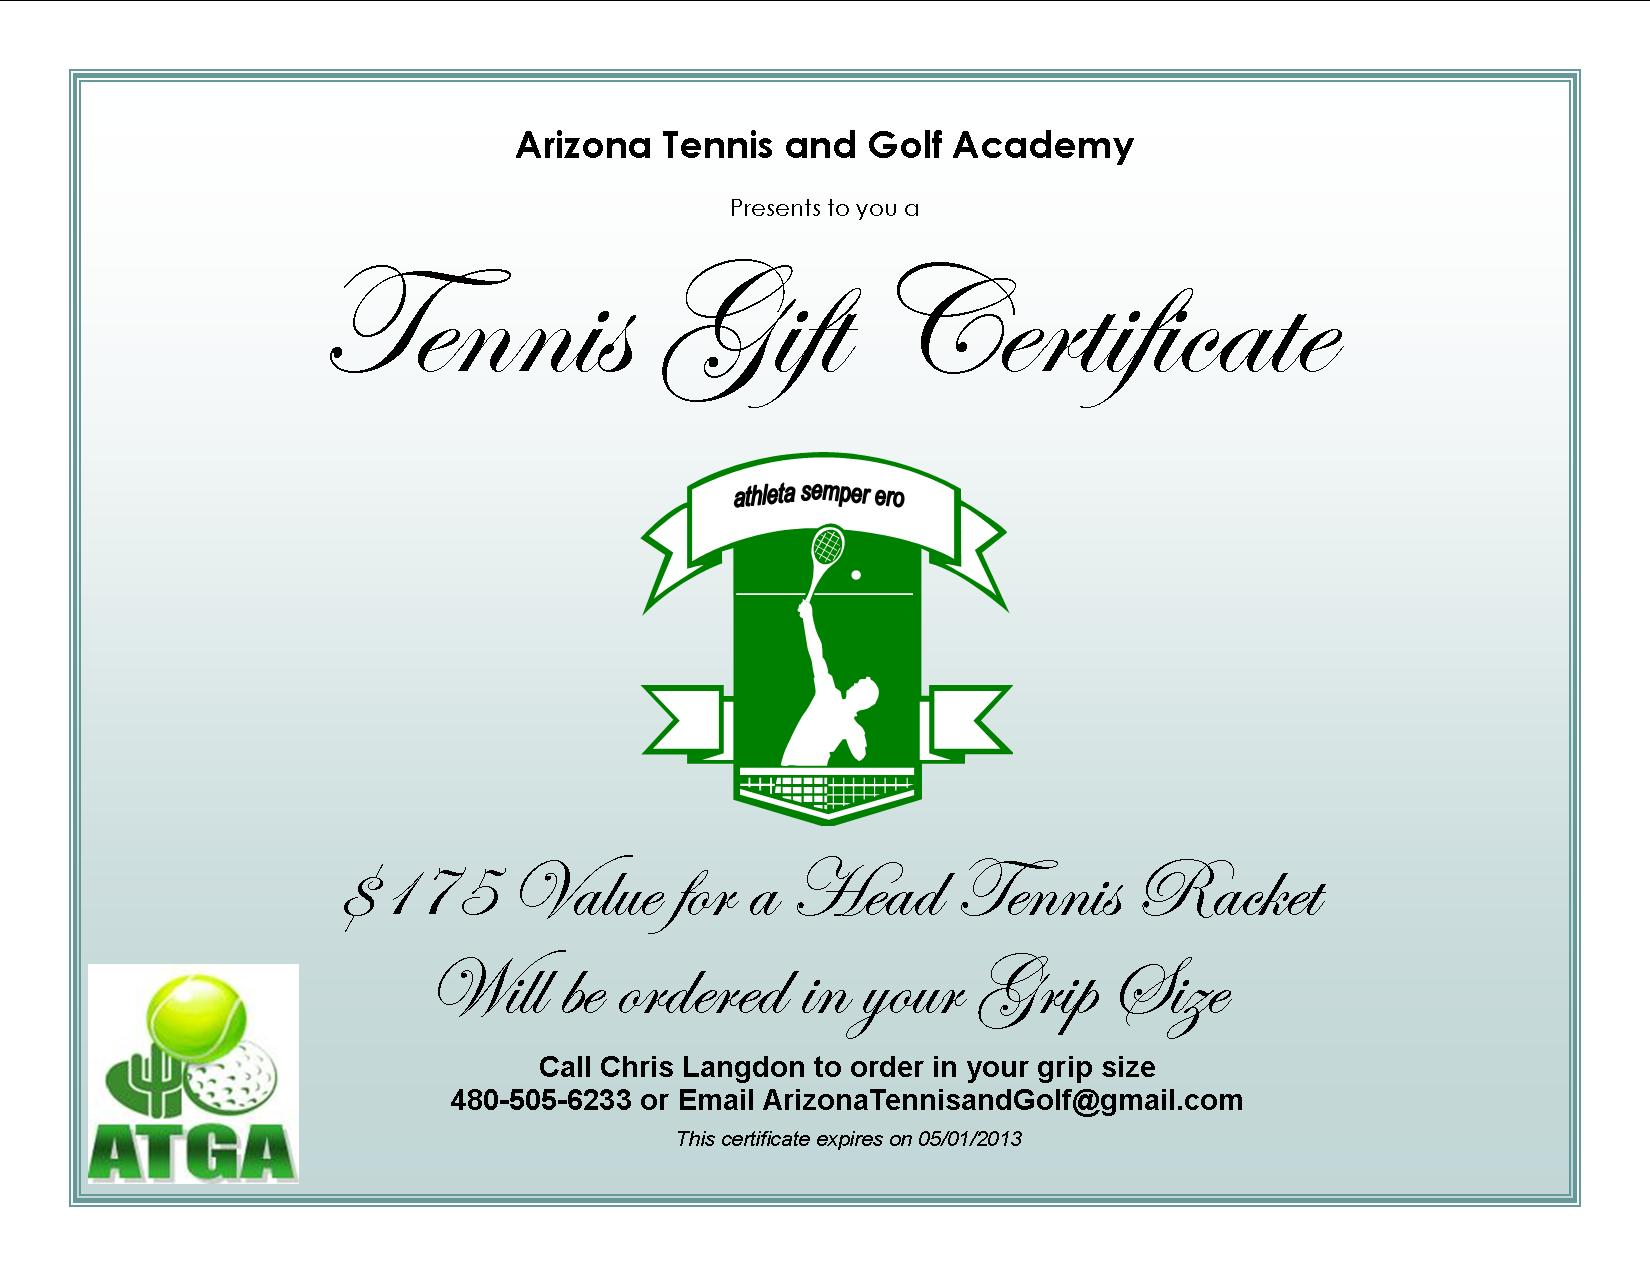 arizona tennis and golf academy current tennis specials. Black Bedroom Furniture Sets. Home Design Ideas